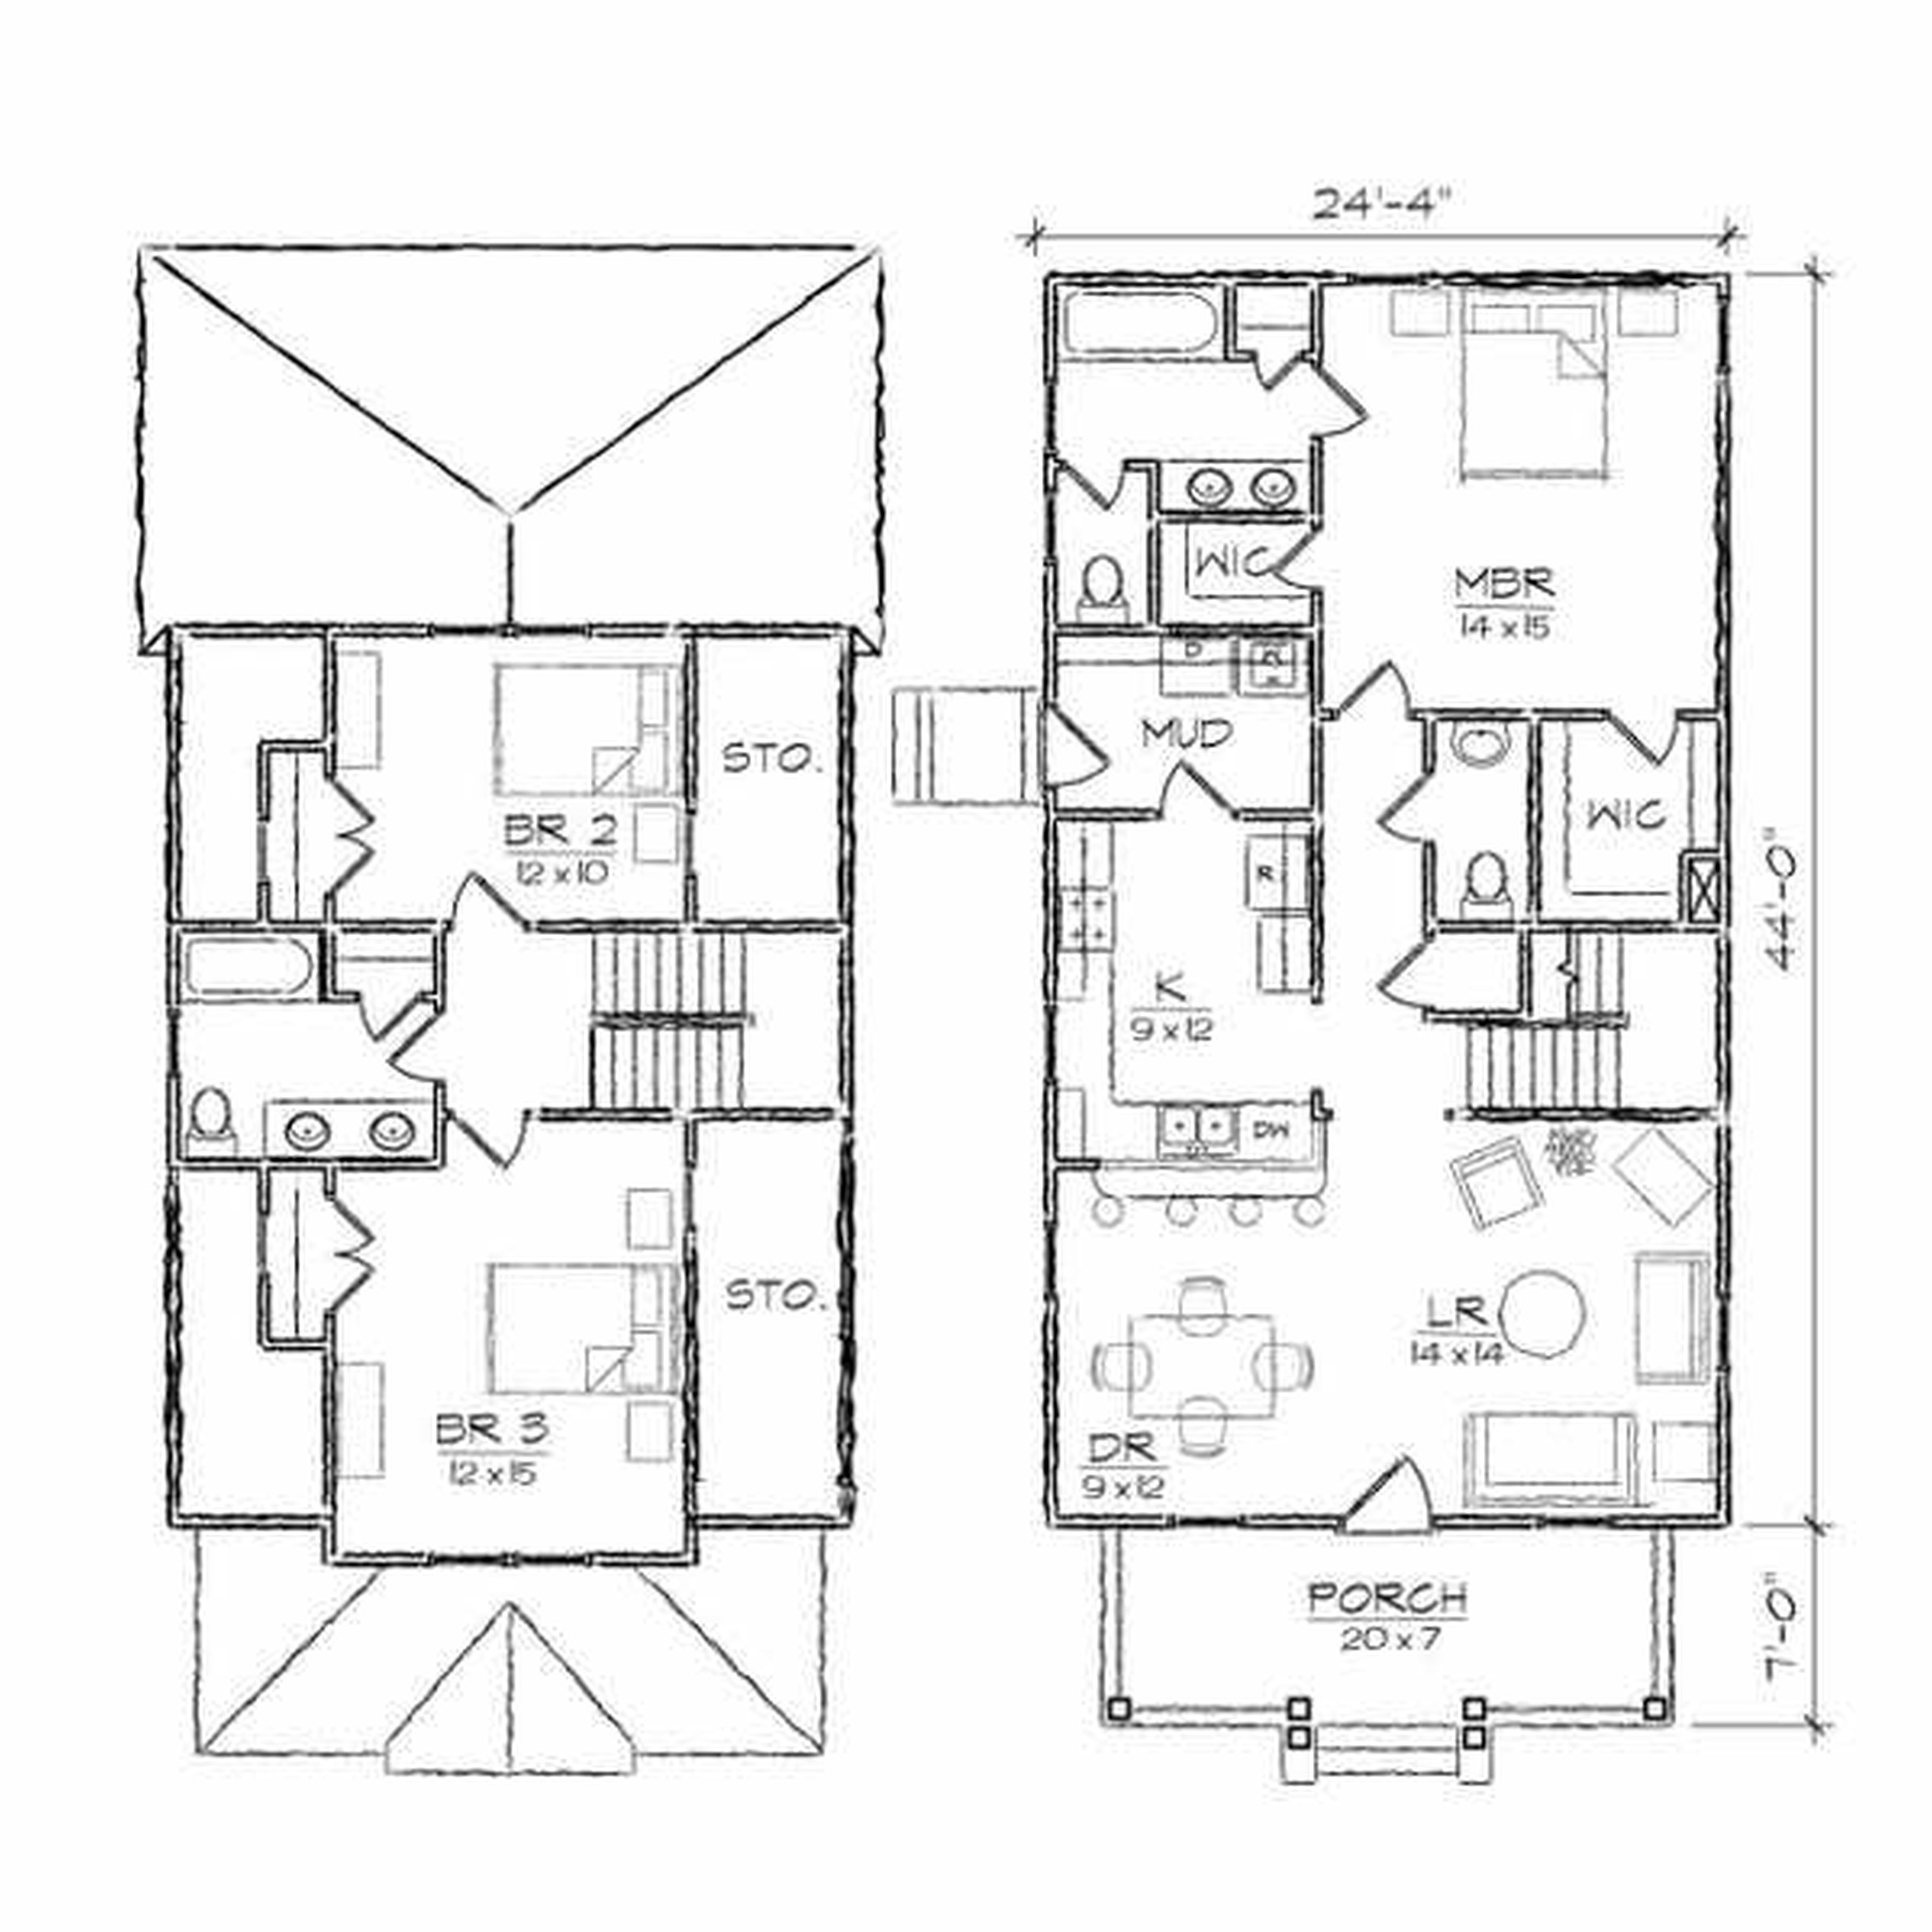 Kitchen Floor Plans And Elevations: Building Elevations Drawing At GetDrawings.com